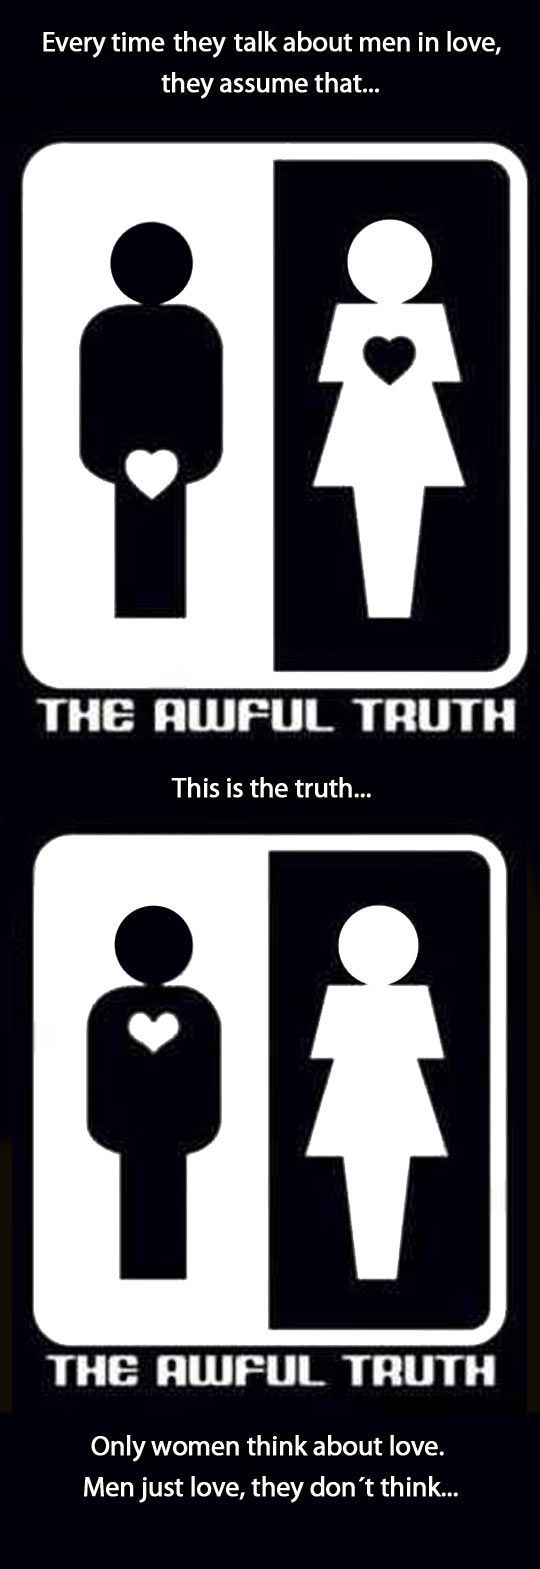 The truth about love…Forget all the rest of the crazy shit! No I don't ever wonder, I feel love, I know, period!